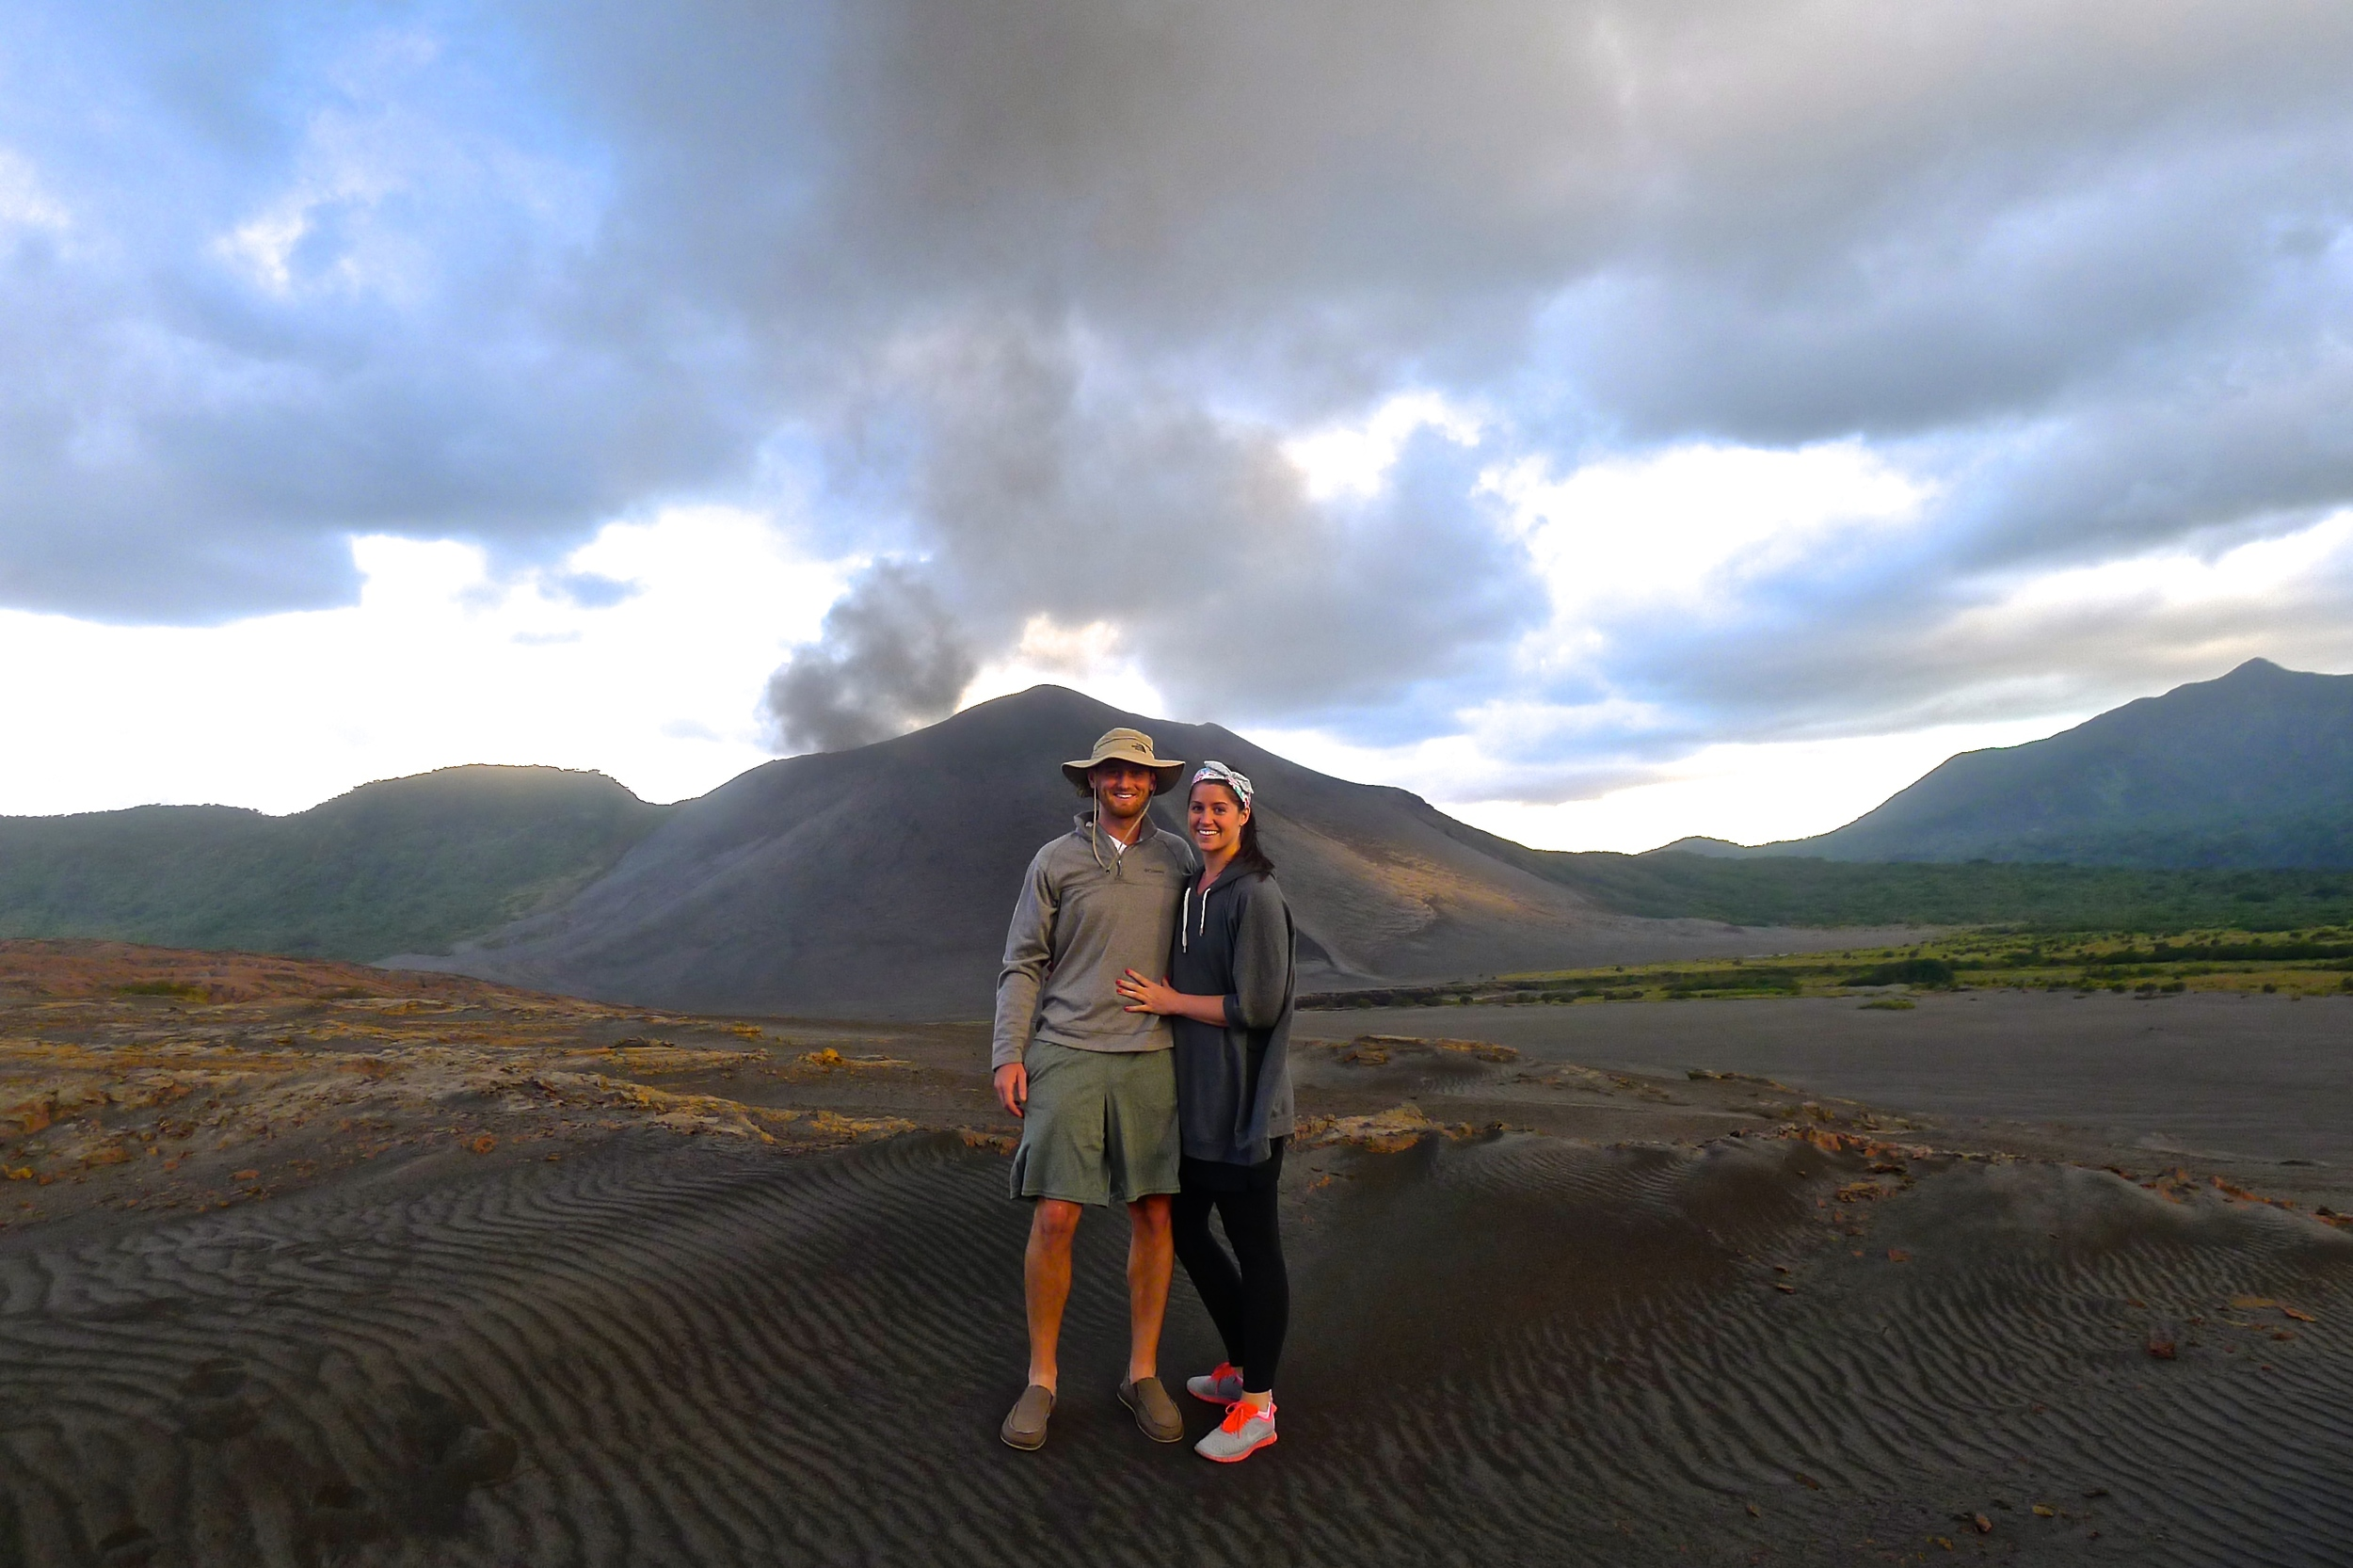 Jeff and I during our trip to Tanna in 2013. The island was reported to have 100% of it's crops and structures destroyedby Cyclone Pam.